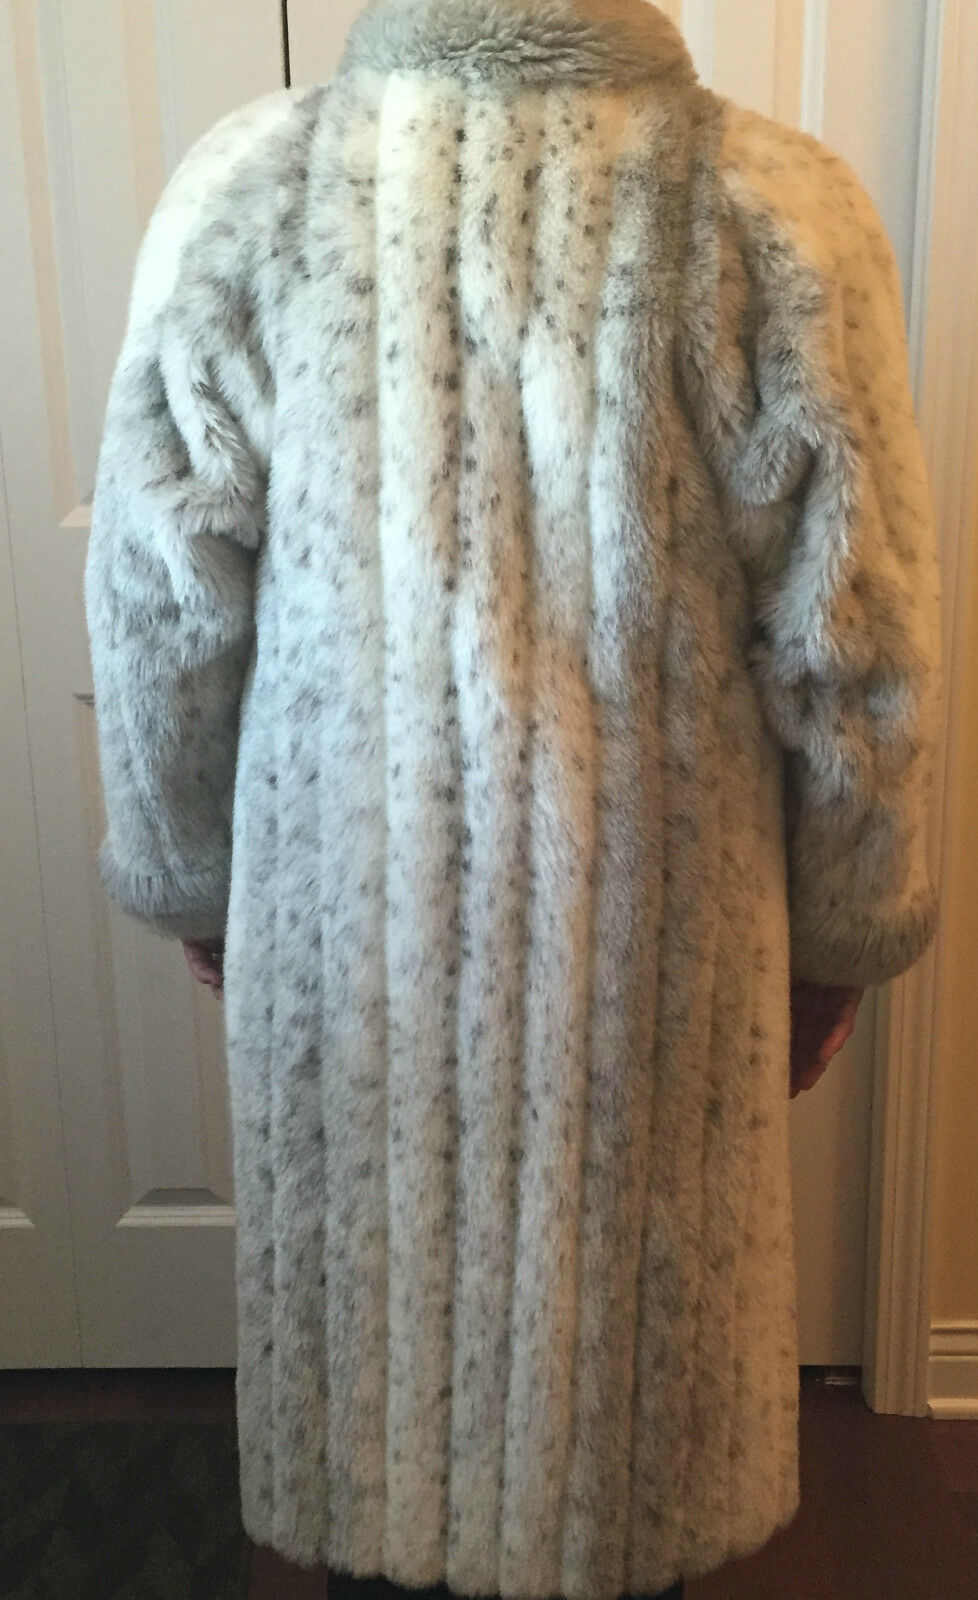 Vintage Winter Coat - Spotted Faux Fur Fur Fur reverses to Raincoat Sz M  Made in USA  8208a6